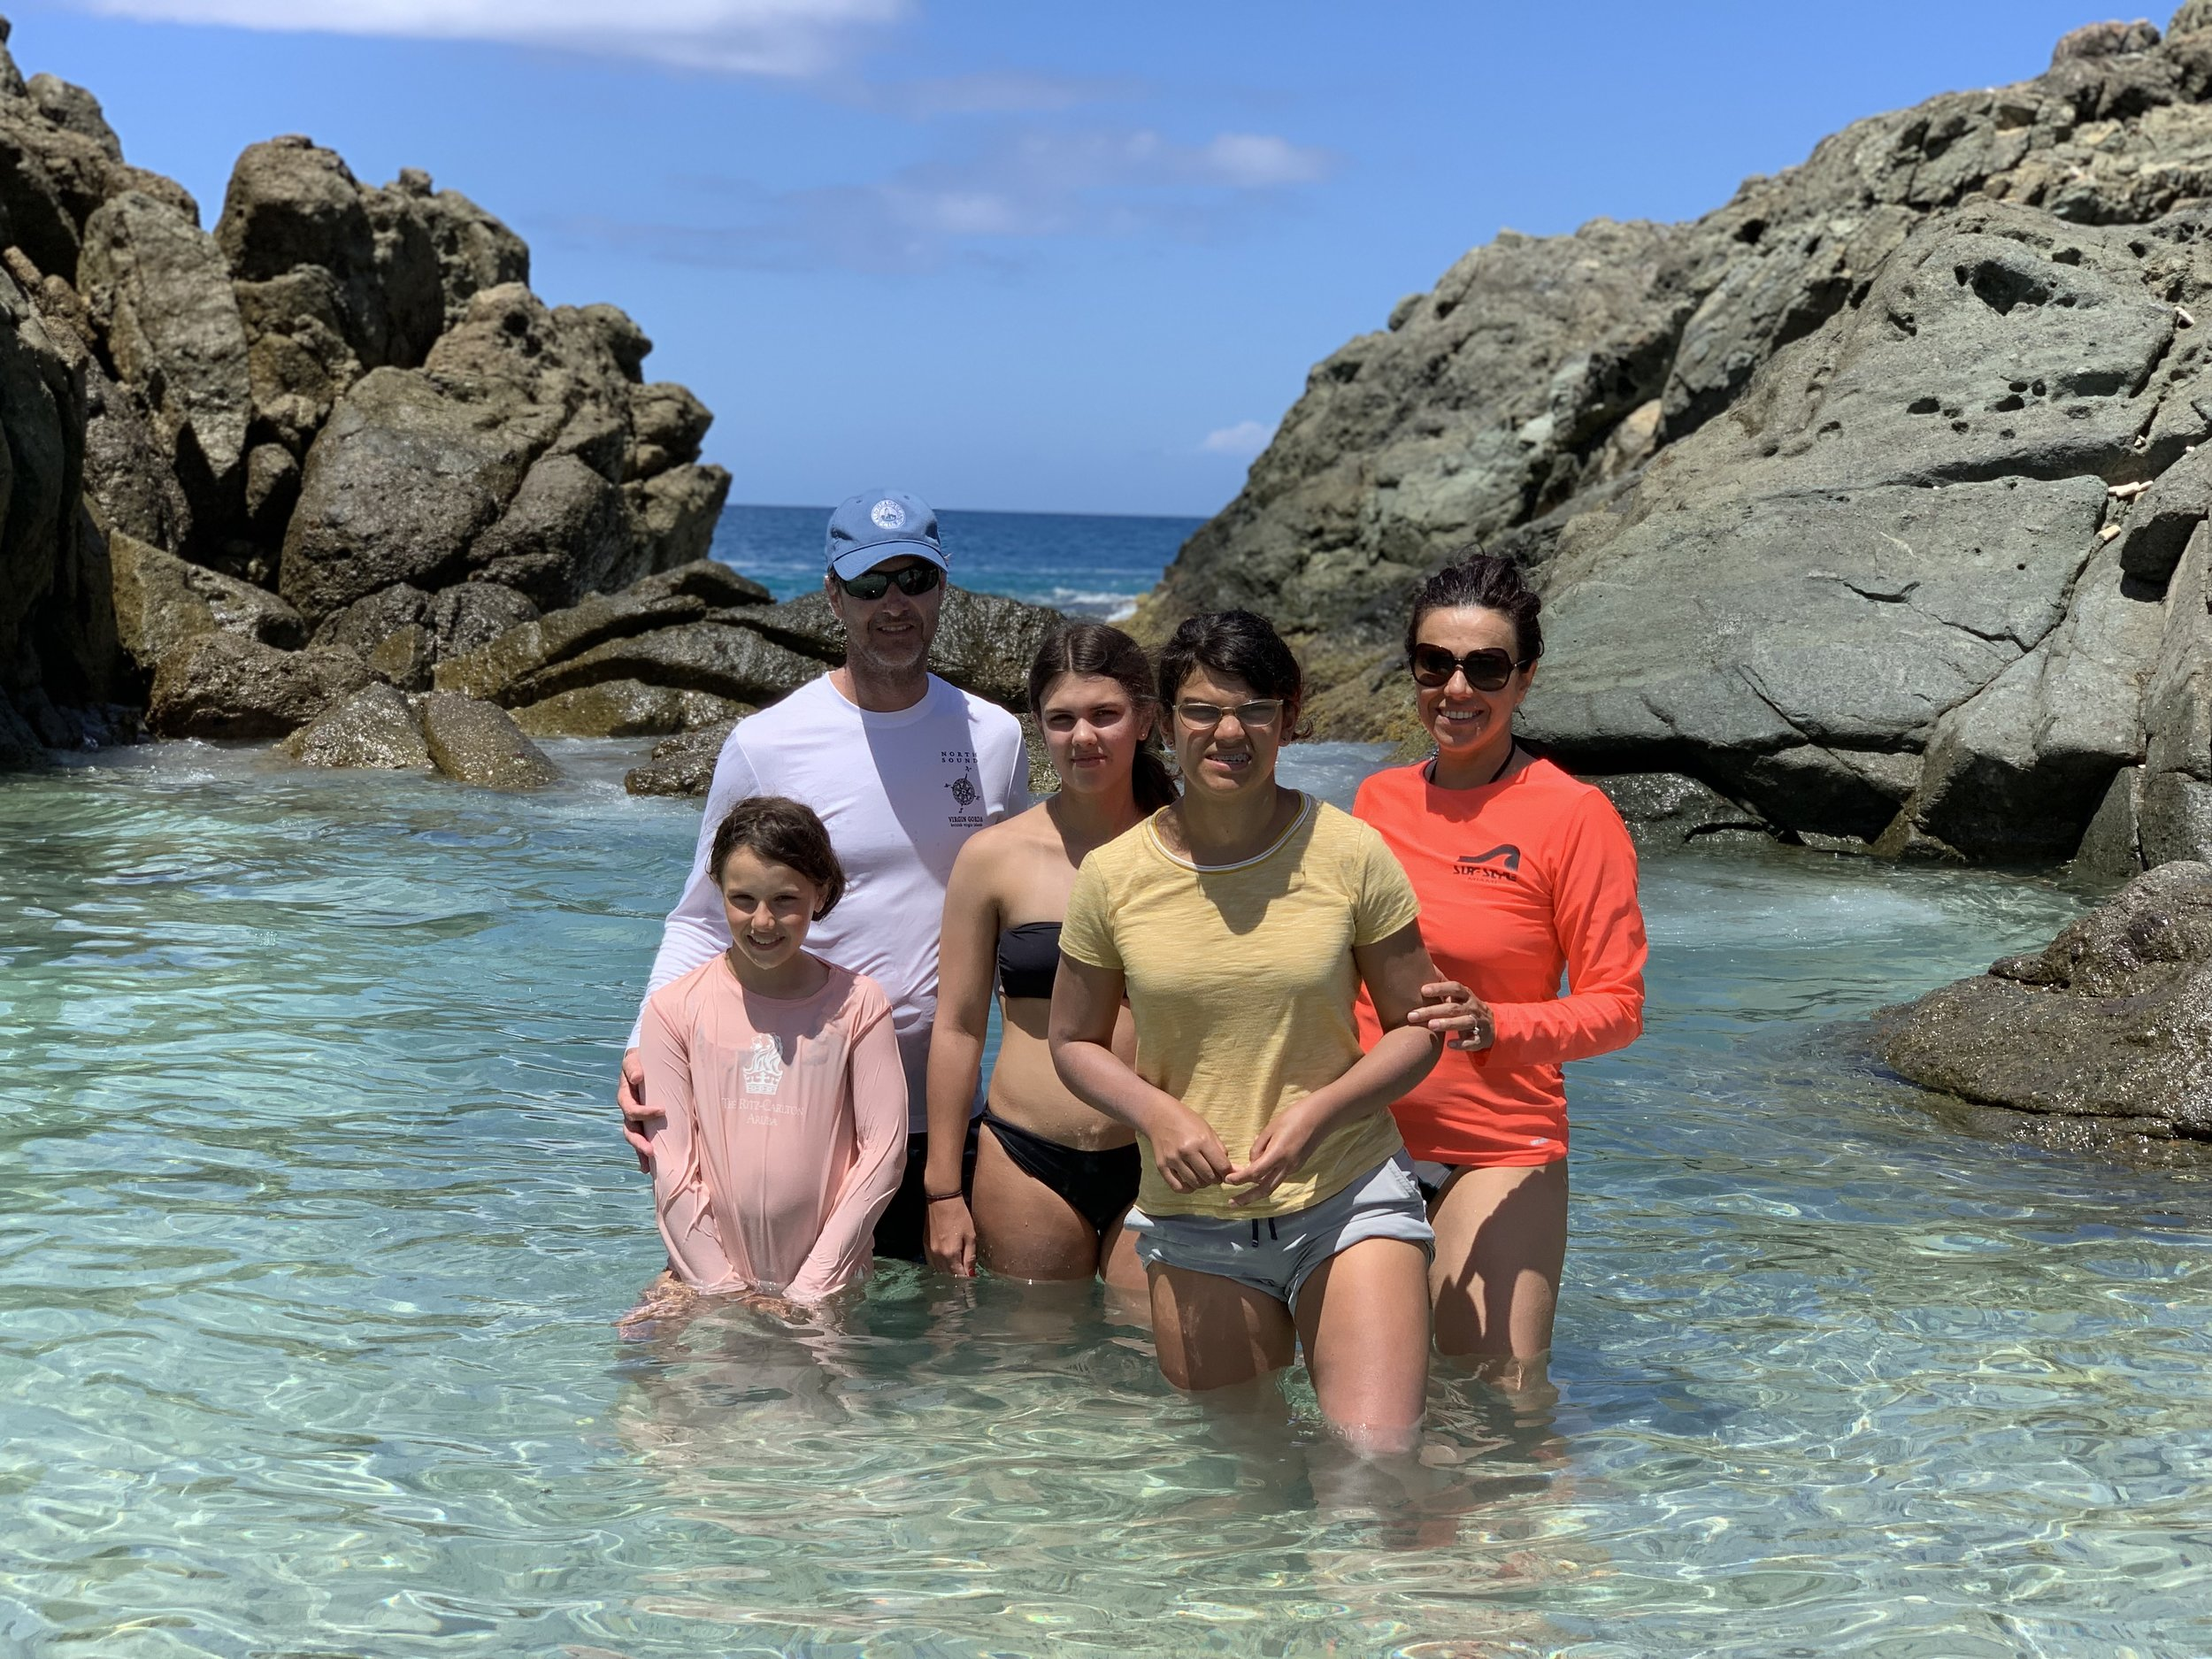 halloran family charter BUBBLY POOL, JOST VAN DYKE SPRING BREAK MARCH 2019